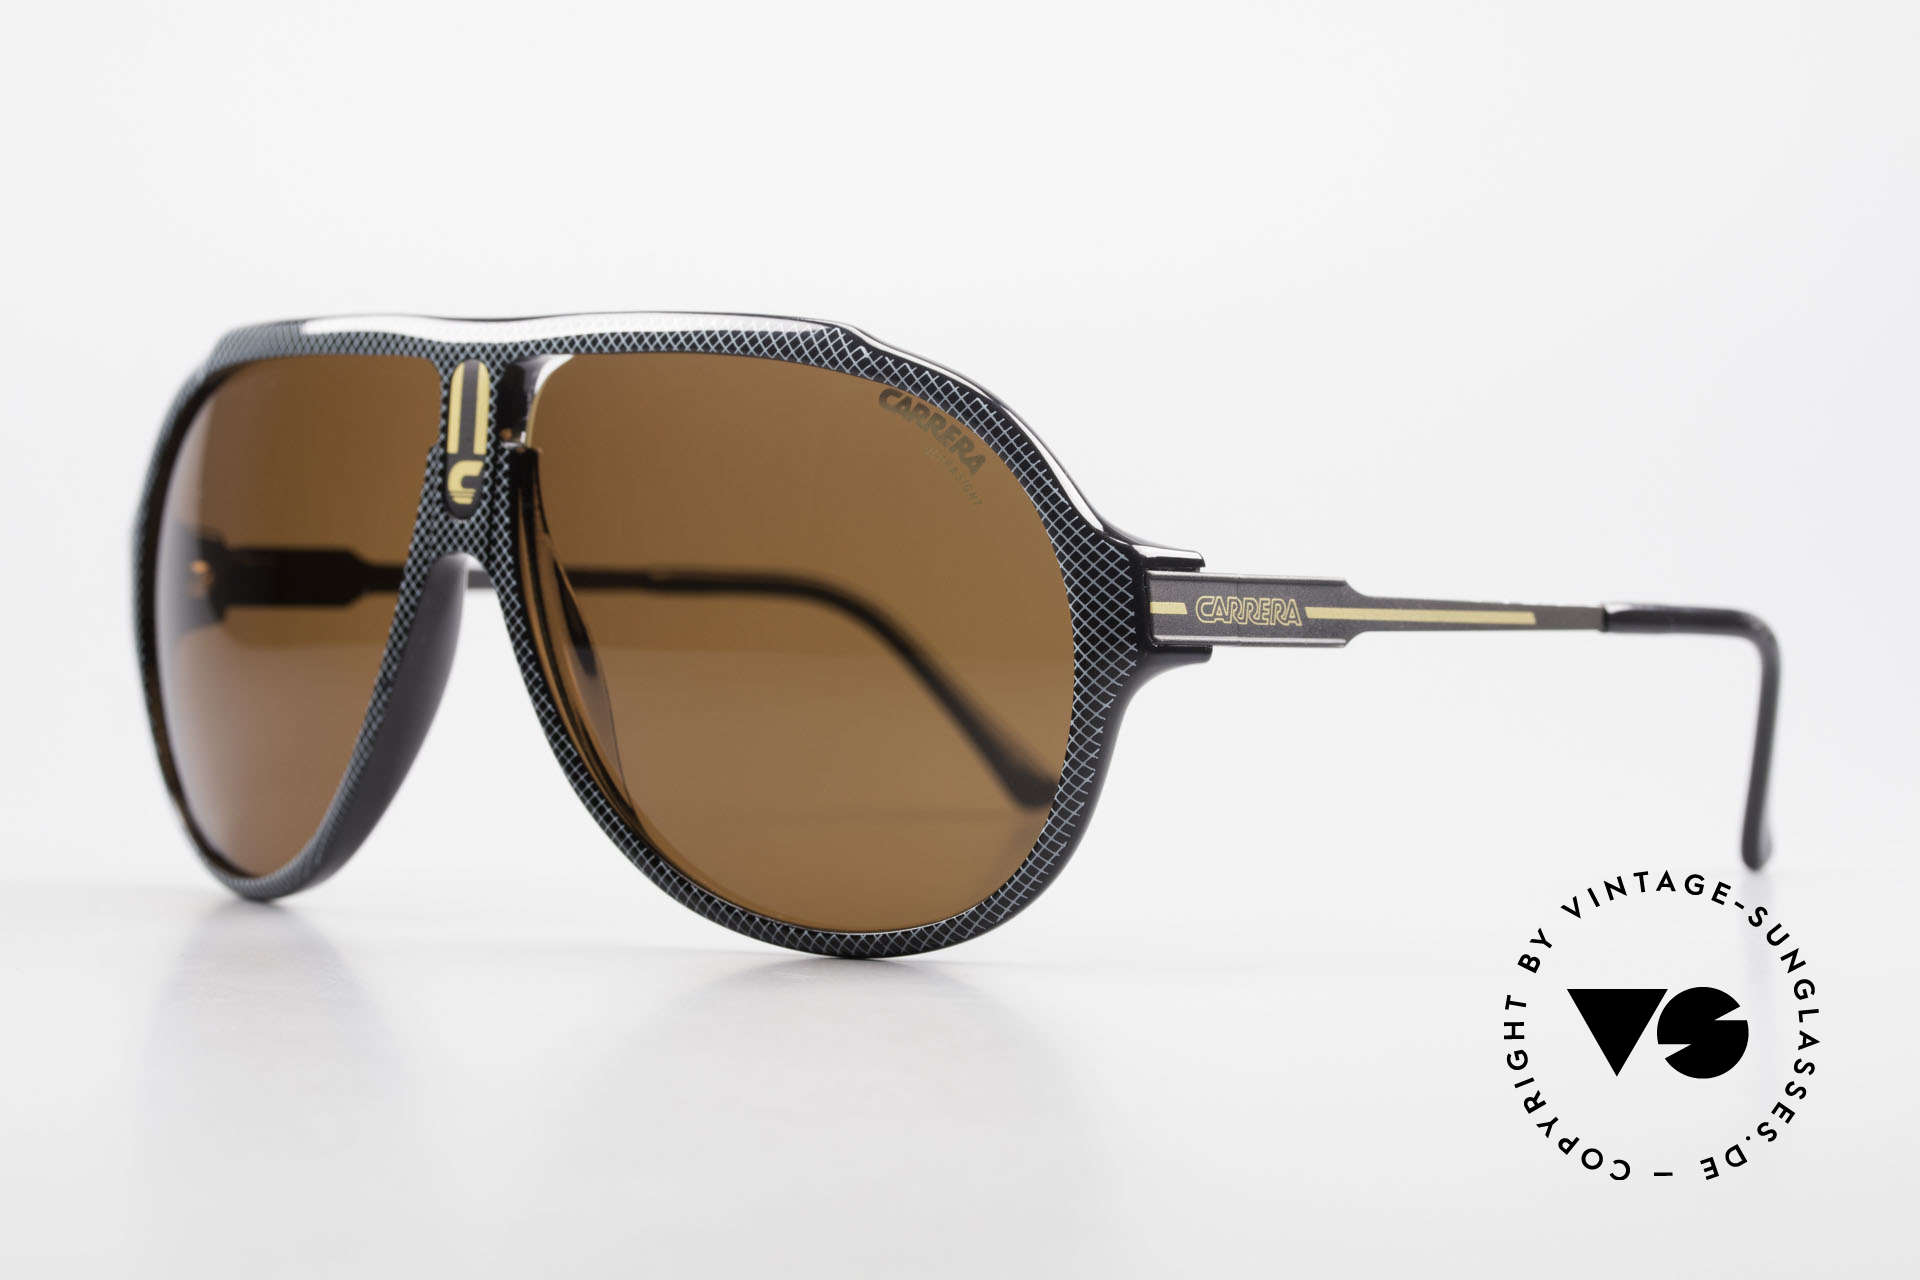 Carrera 5565 Old Vintage Sunglasses 1980's, everlasting Optyl-frame still shines like just produced, Made for Men and Women